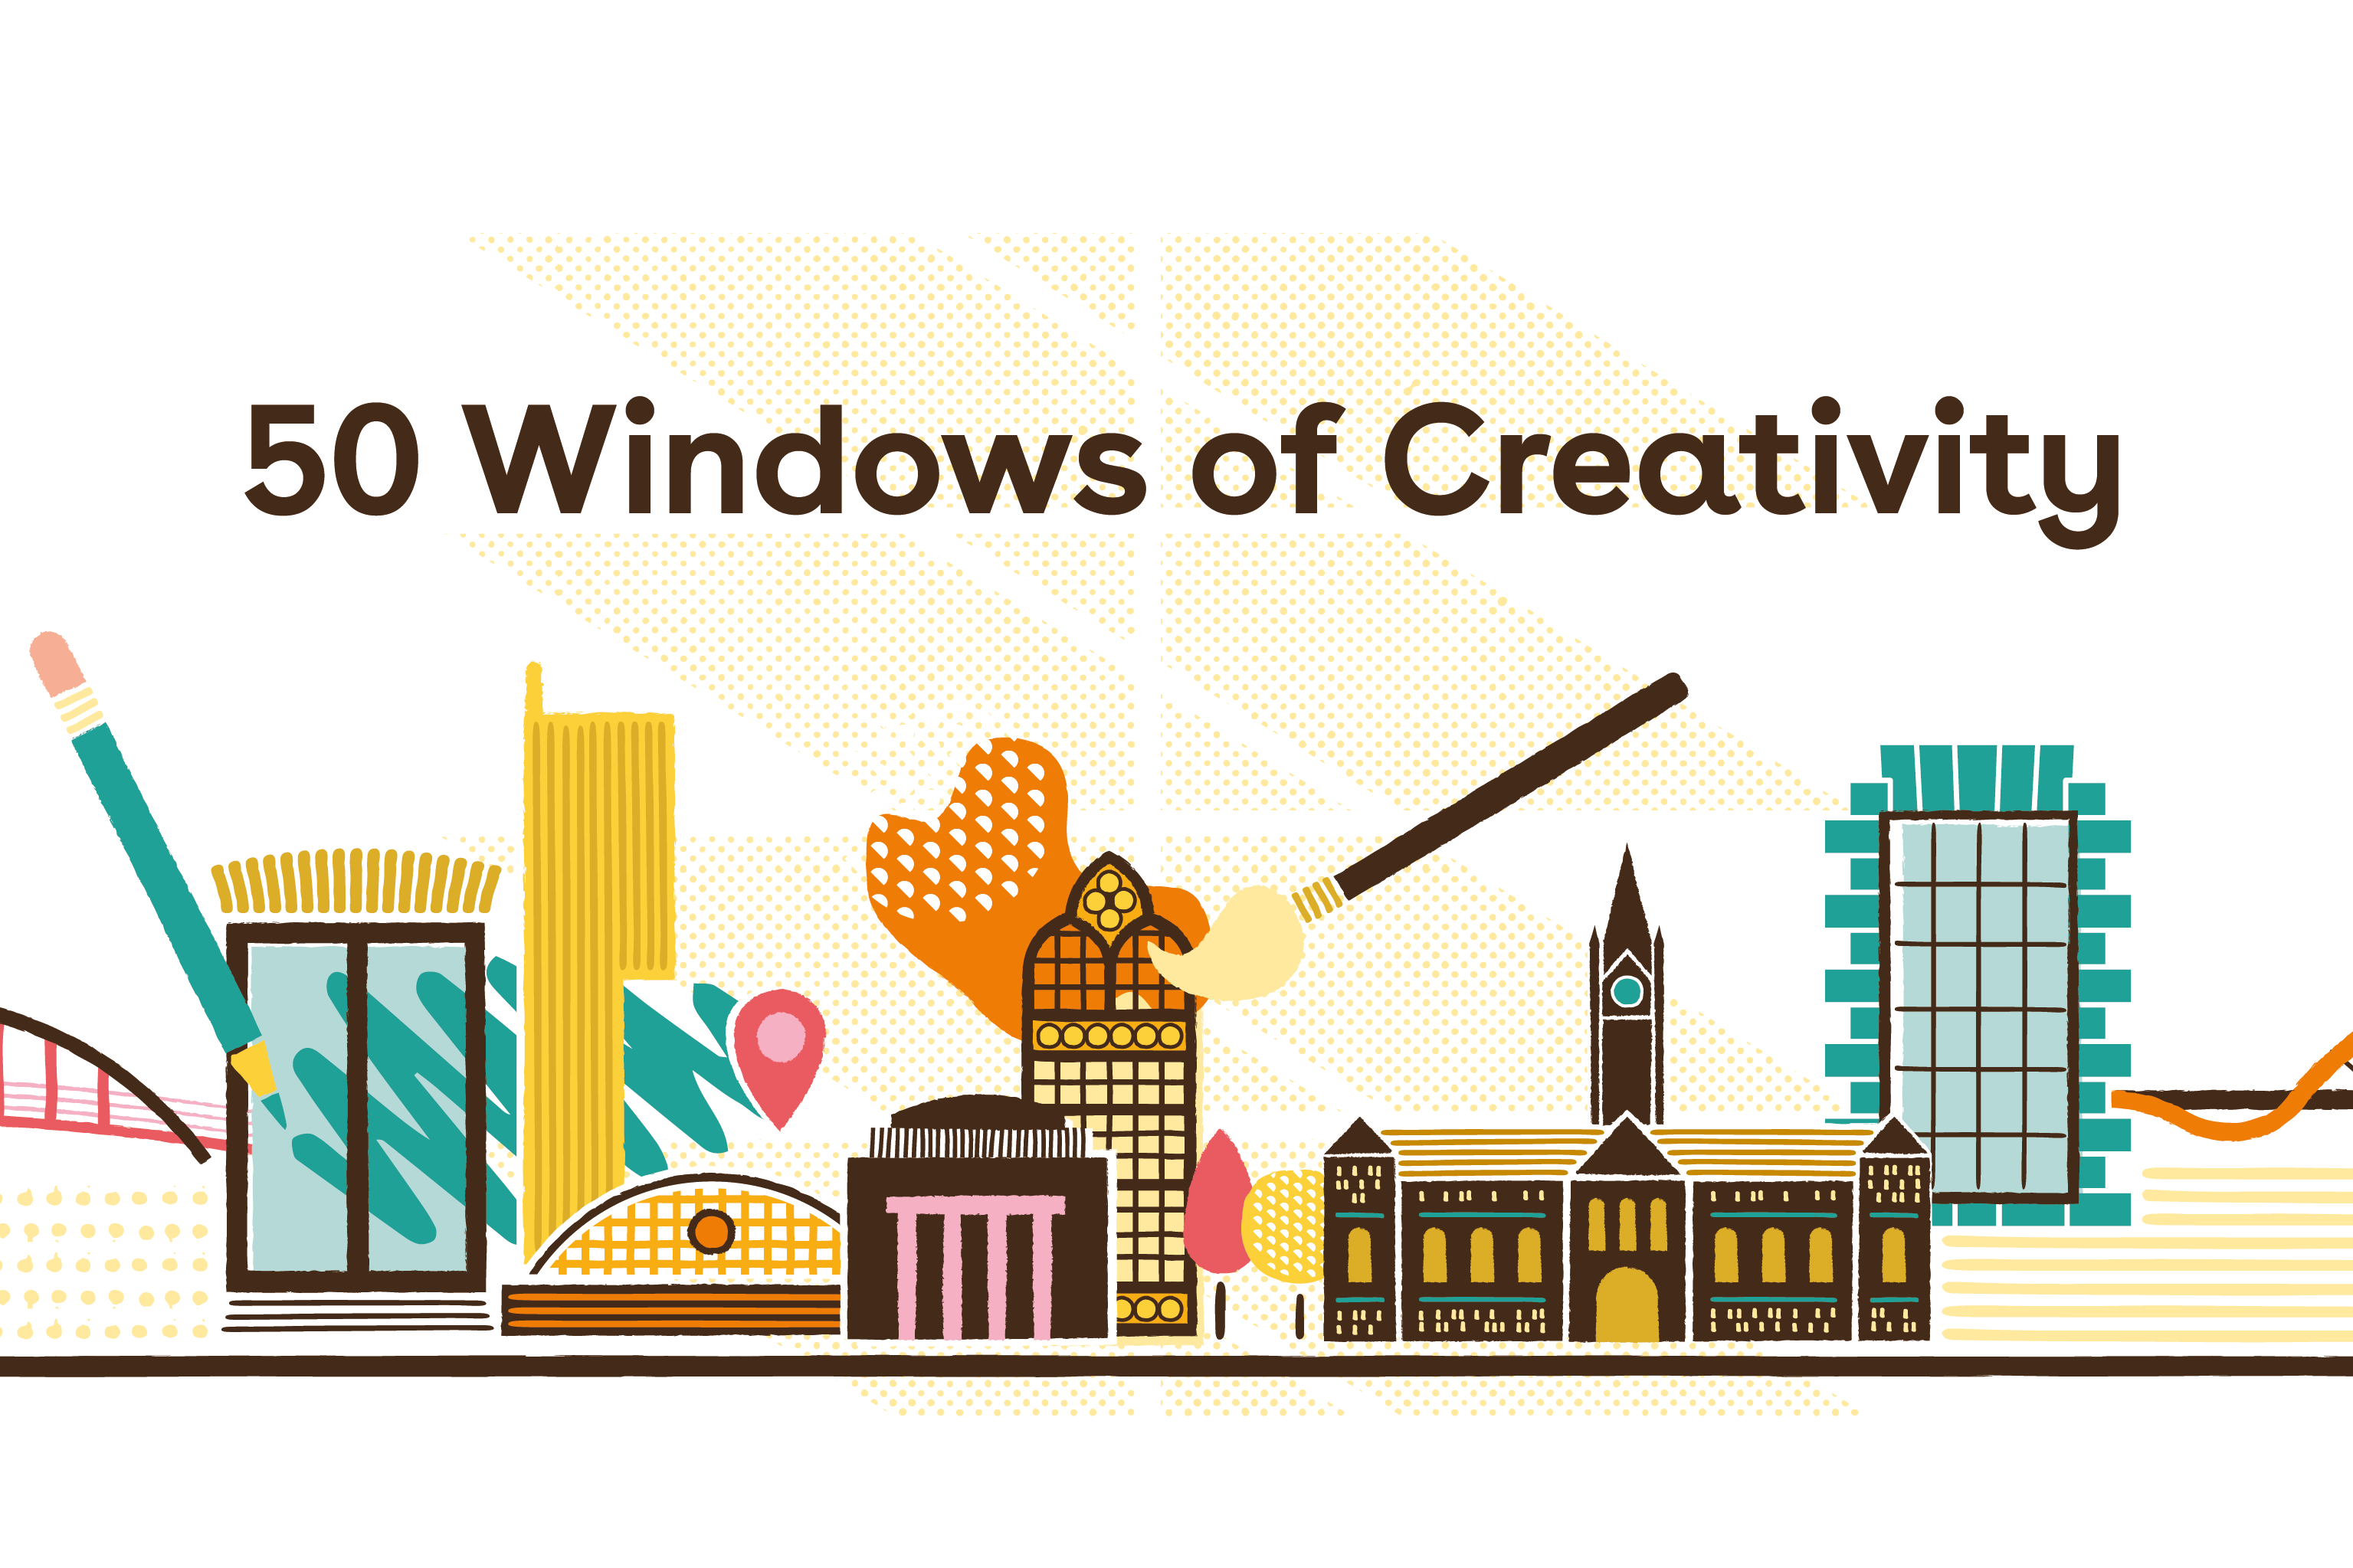 50 Windows of Creativity